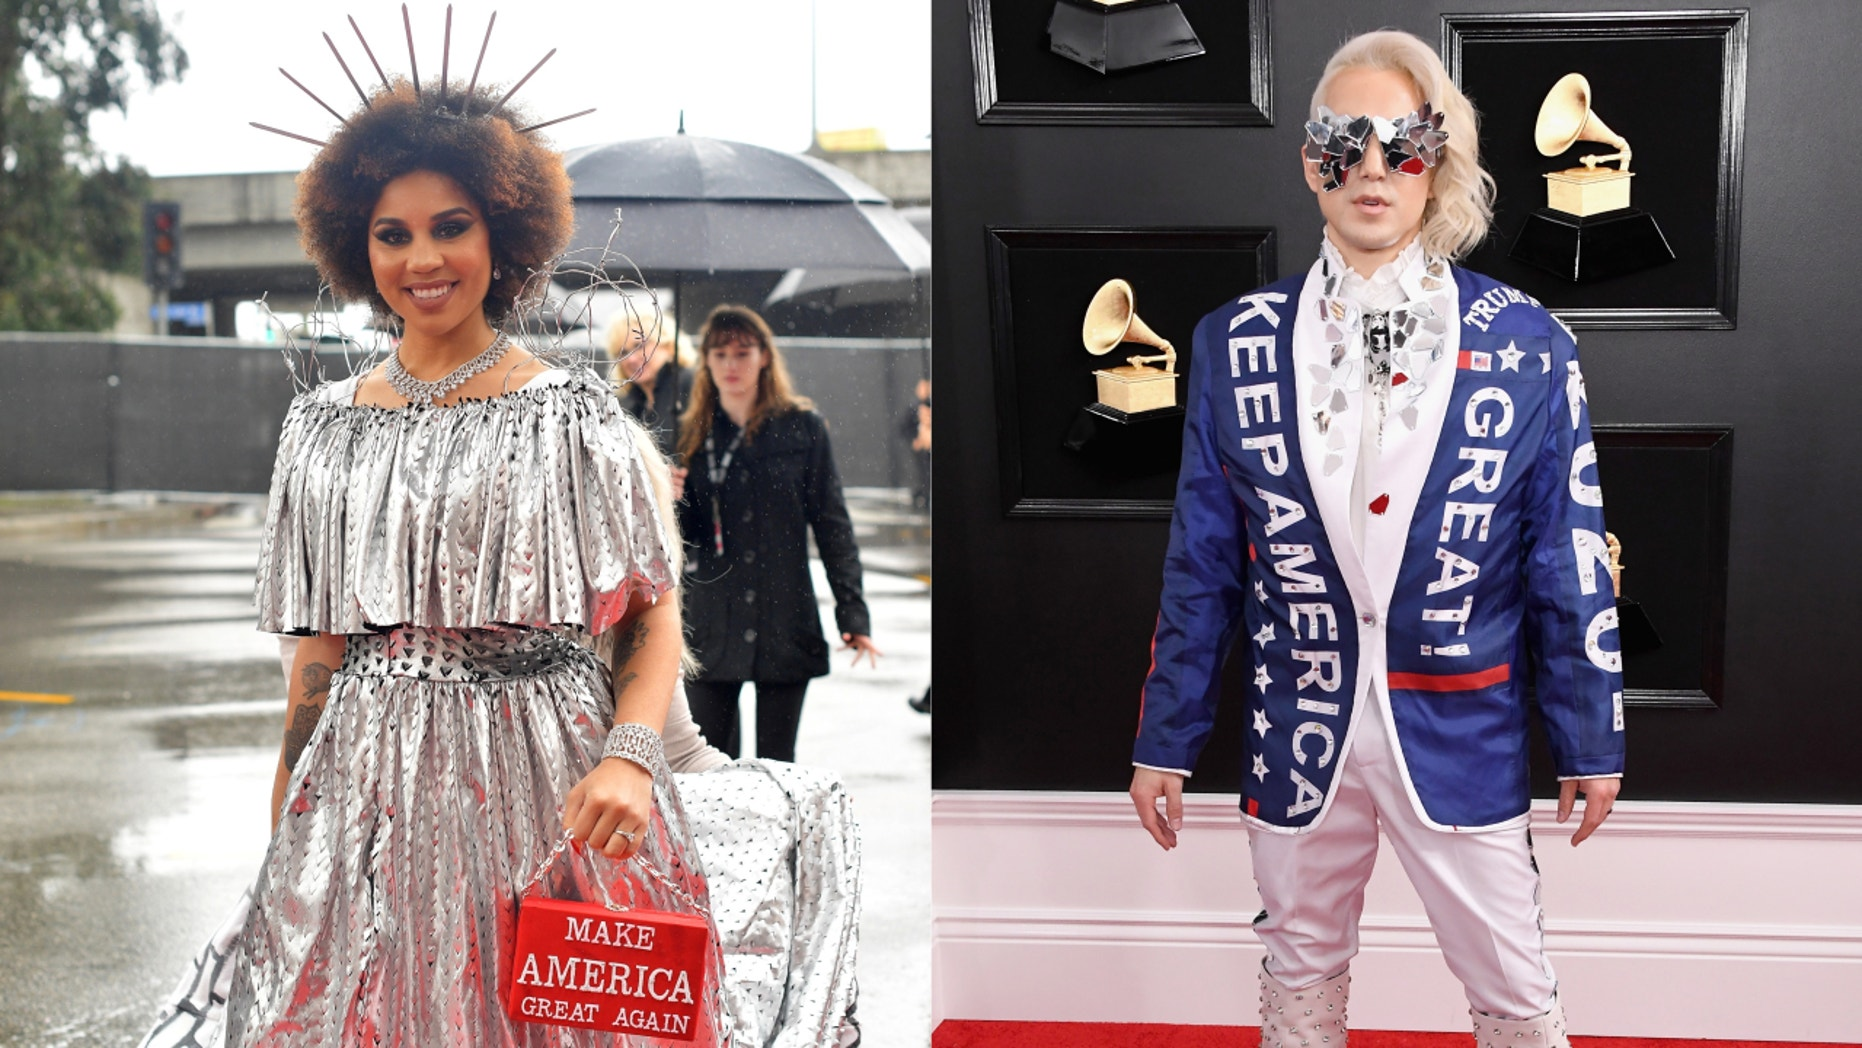 Ricky Rebel Wears Pro-Trump Jacket at 2019 GRAMMYs